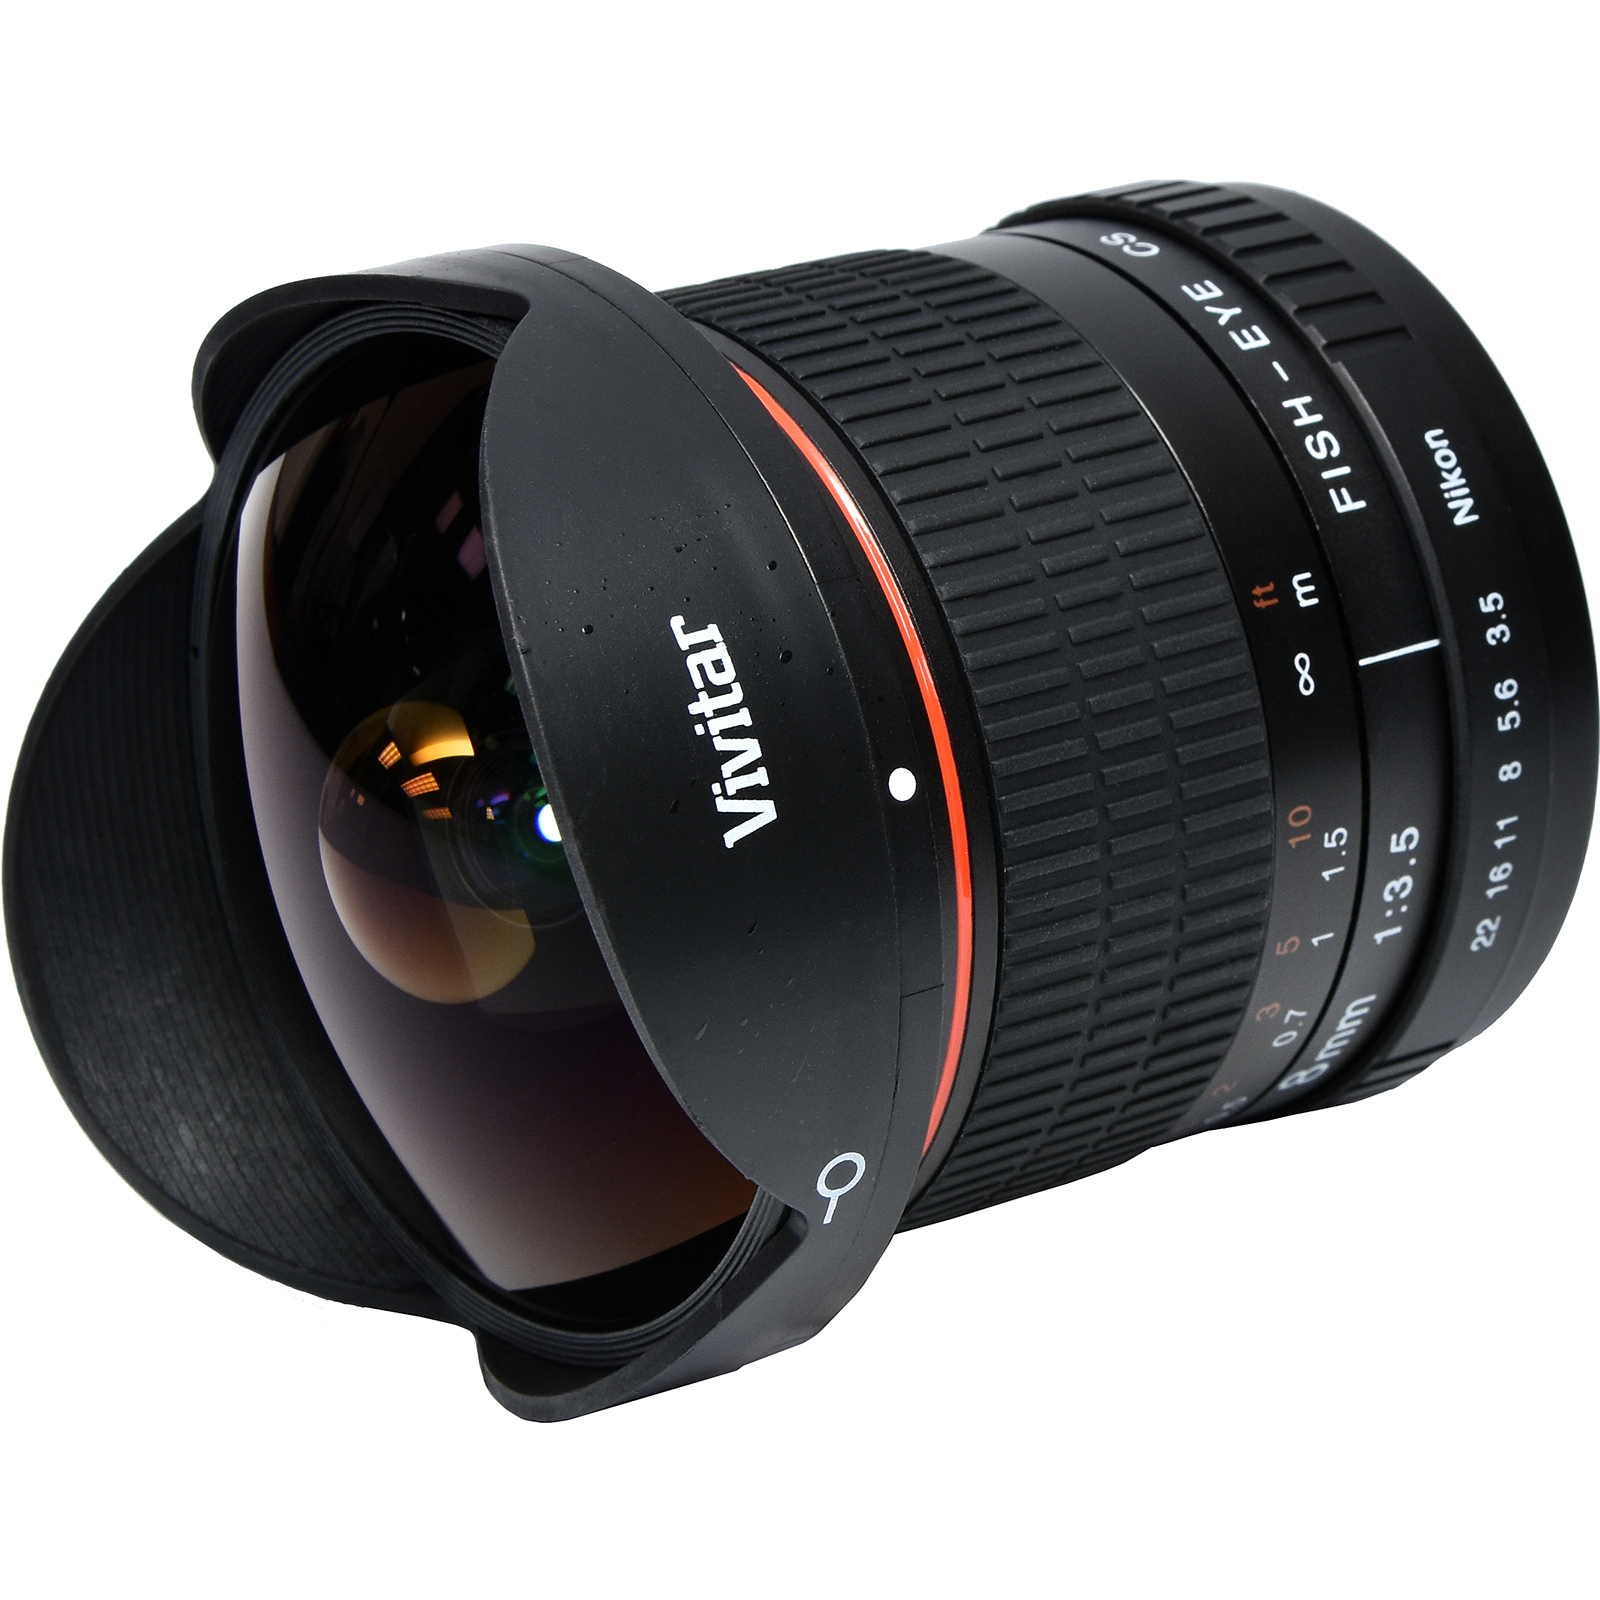 Vivitar 8mm f/3.5 Fisheye Lens (for Nikon Cameras)